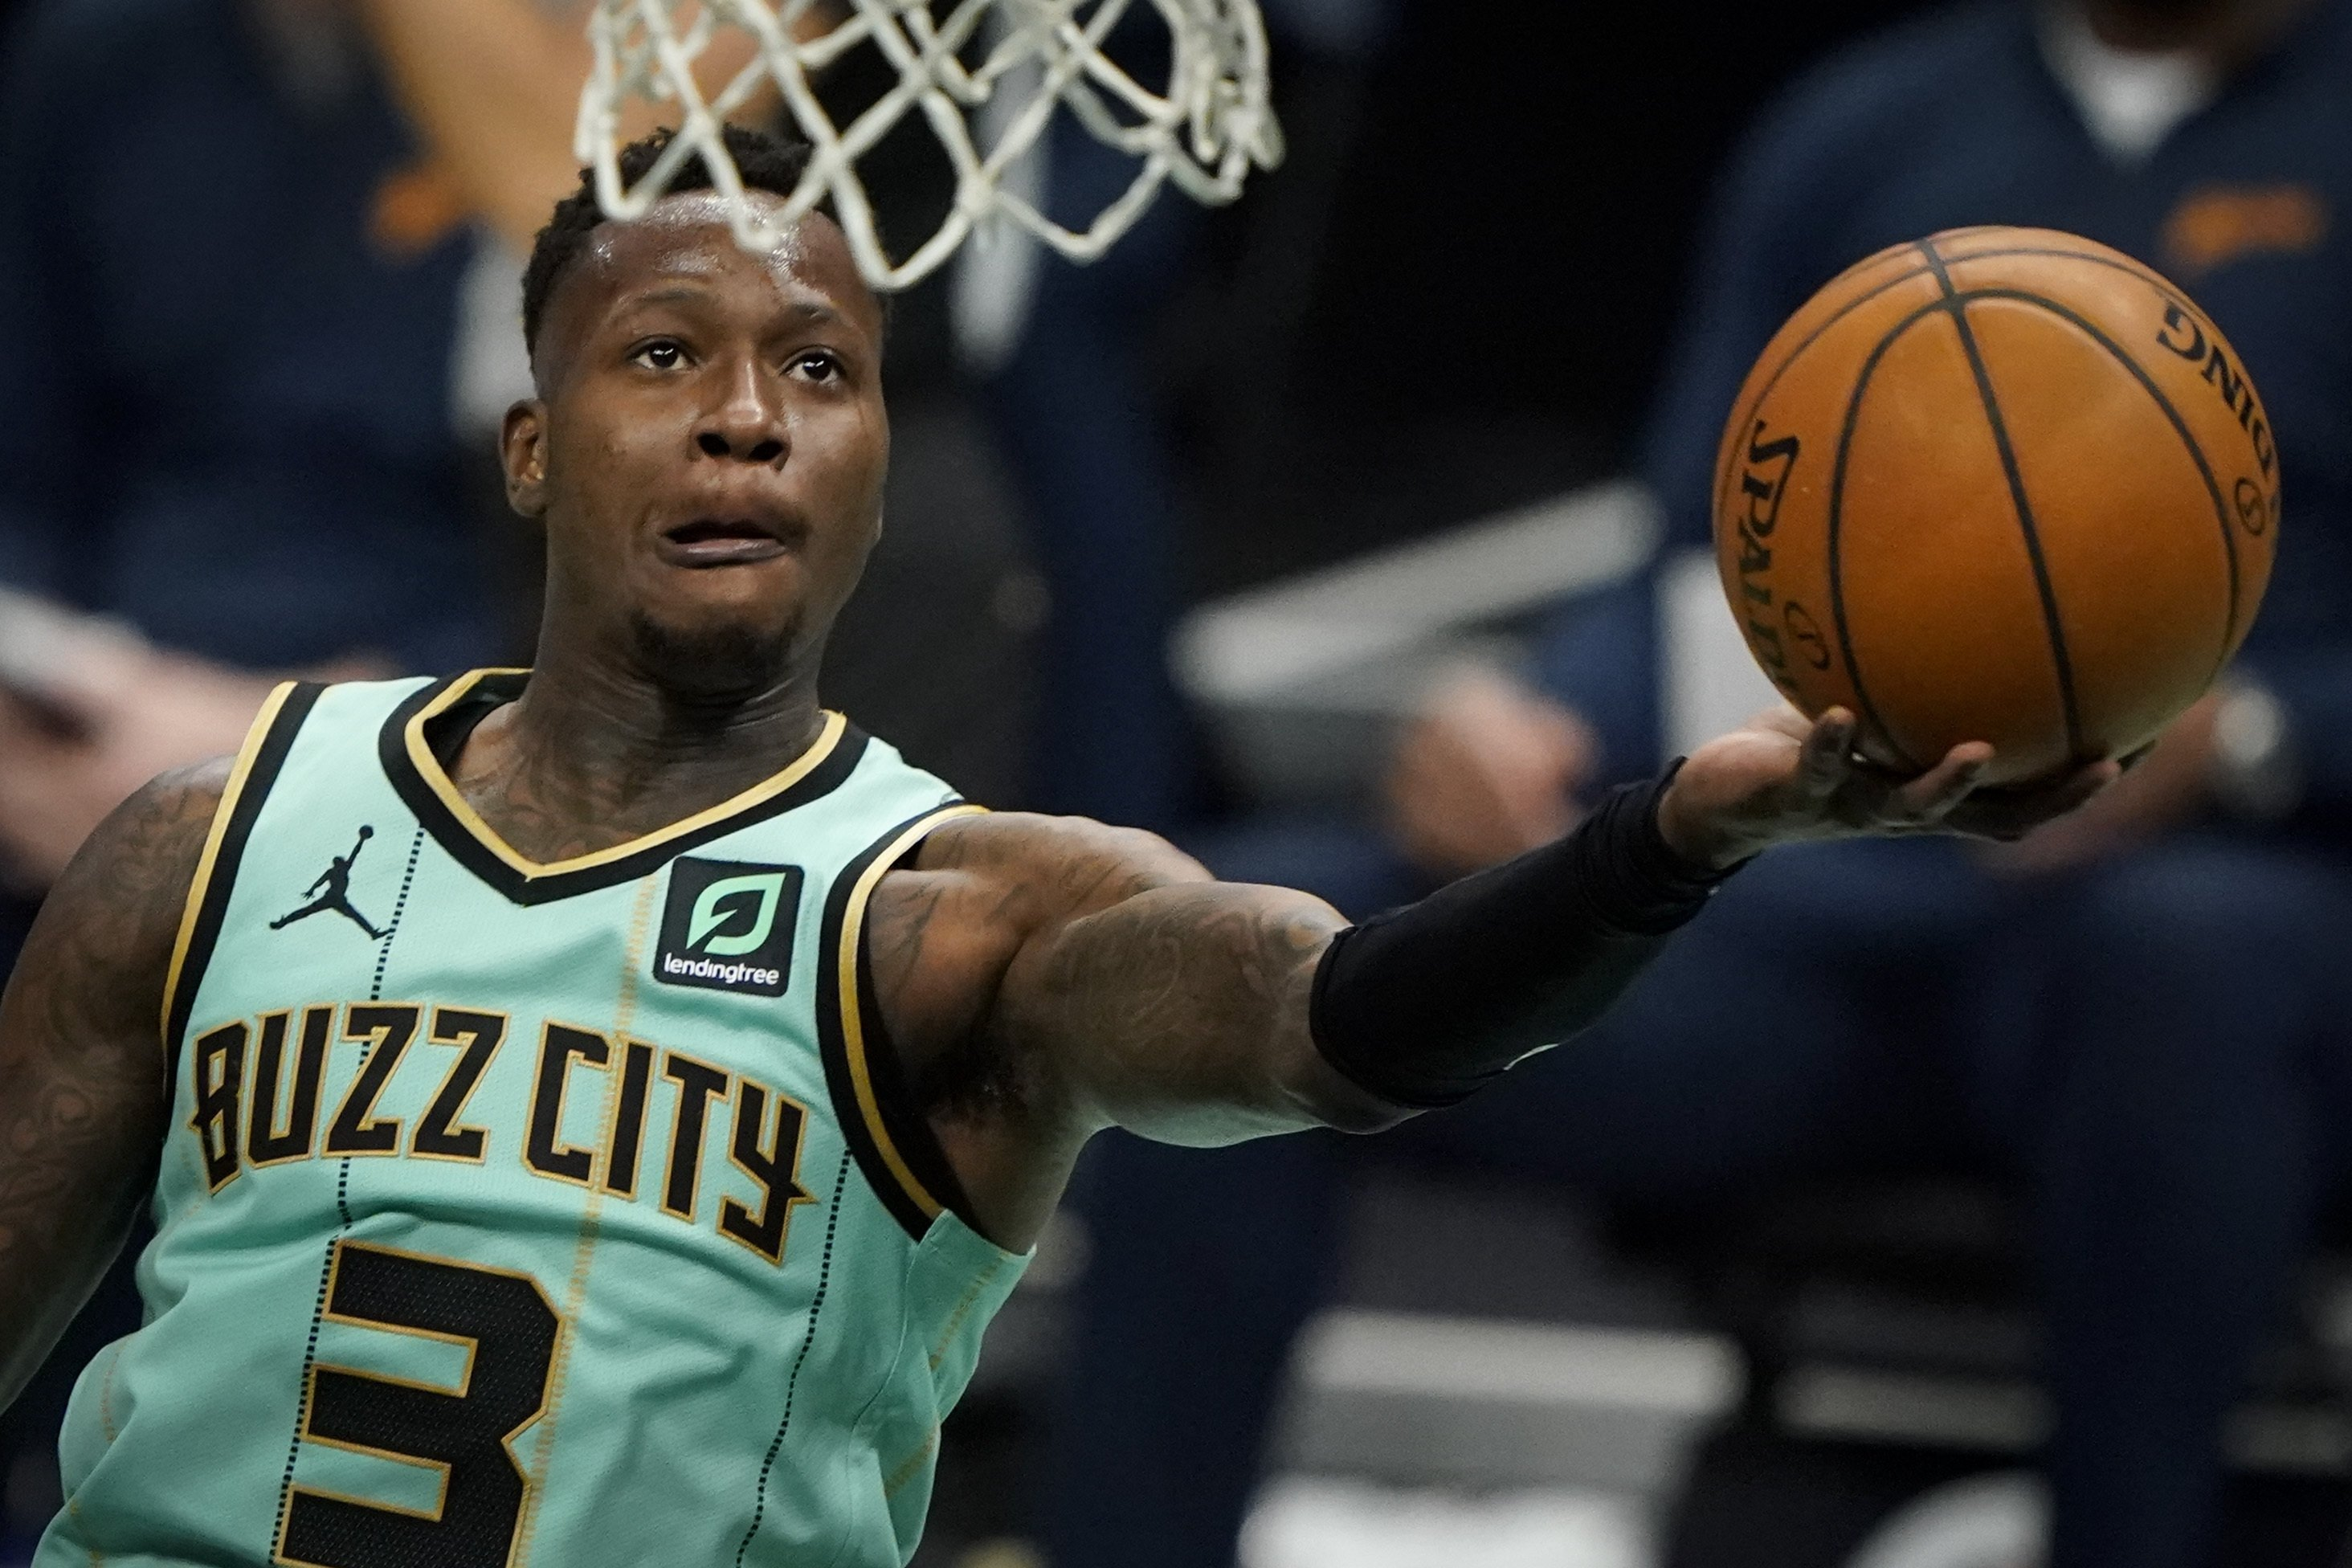 Charlotte Hornets guard Terry Rozier shoots against the Golden State Warriors during an NBA game, in Charlotte, North Carolina, Feb. 20, 2021. (AP Photo)